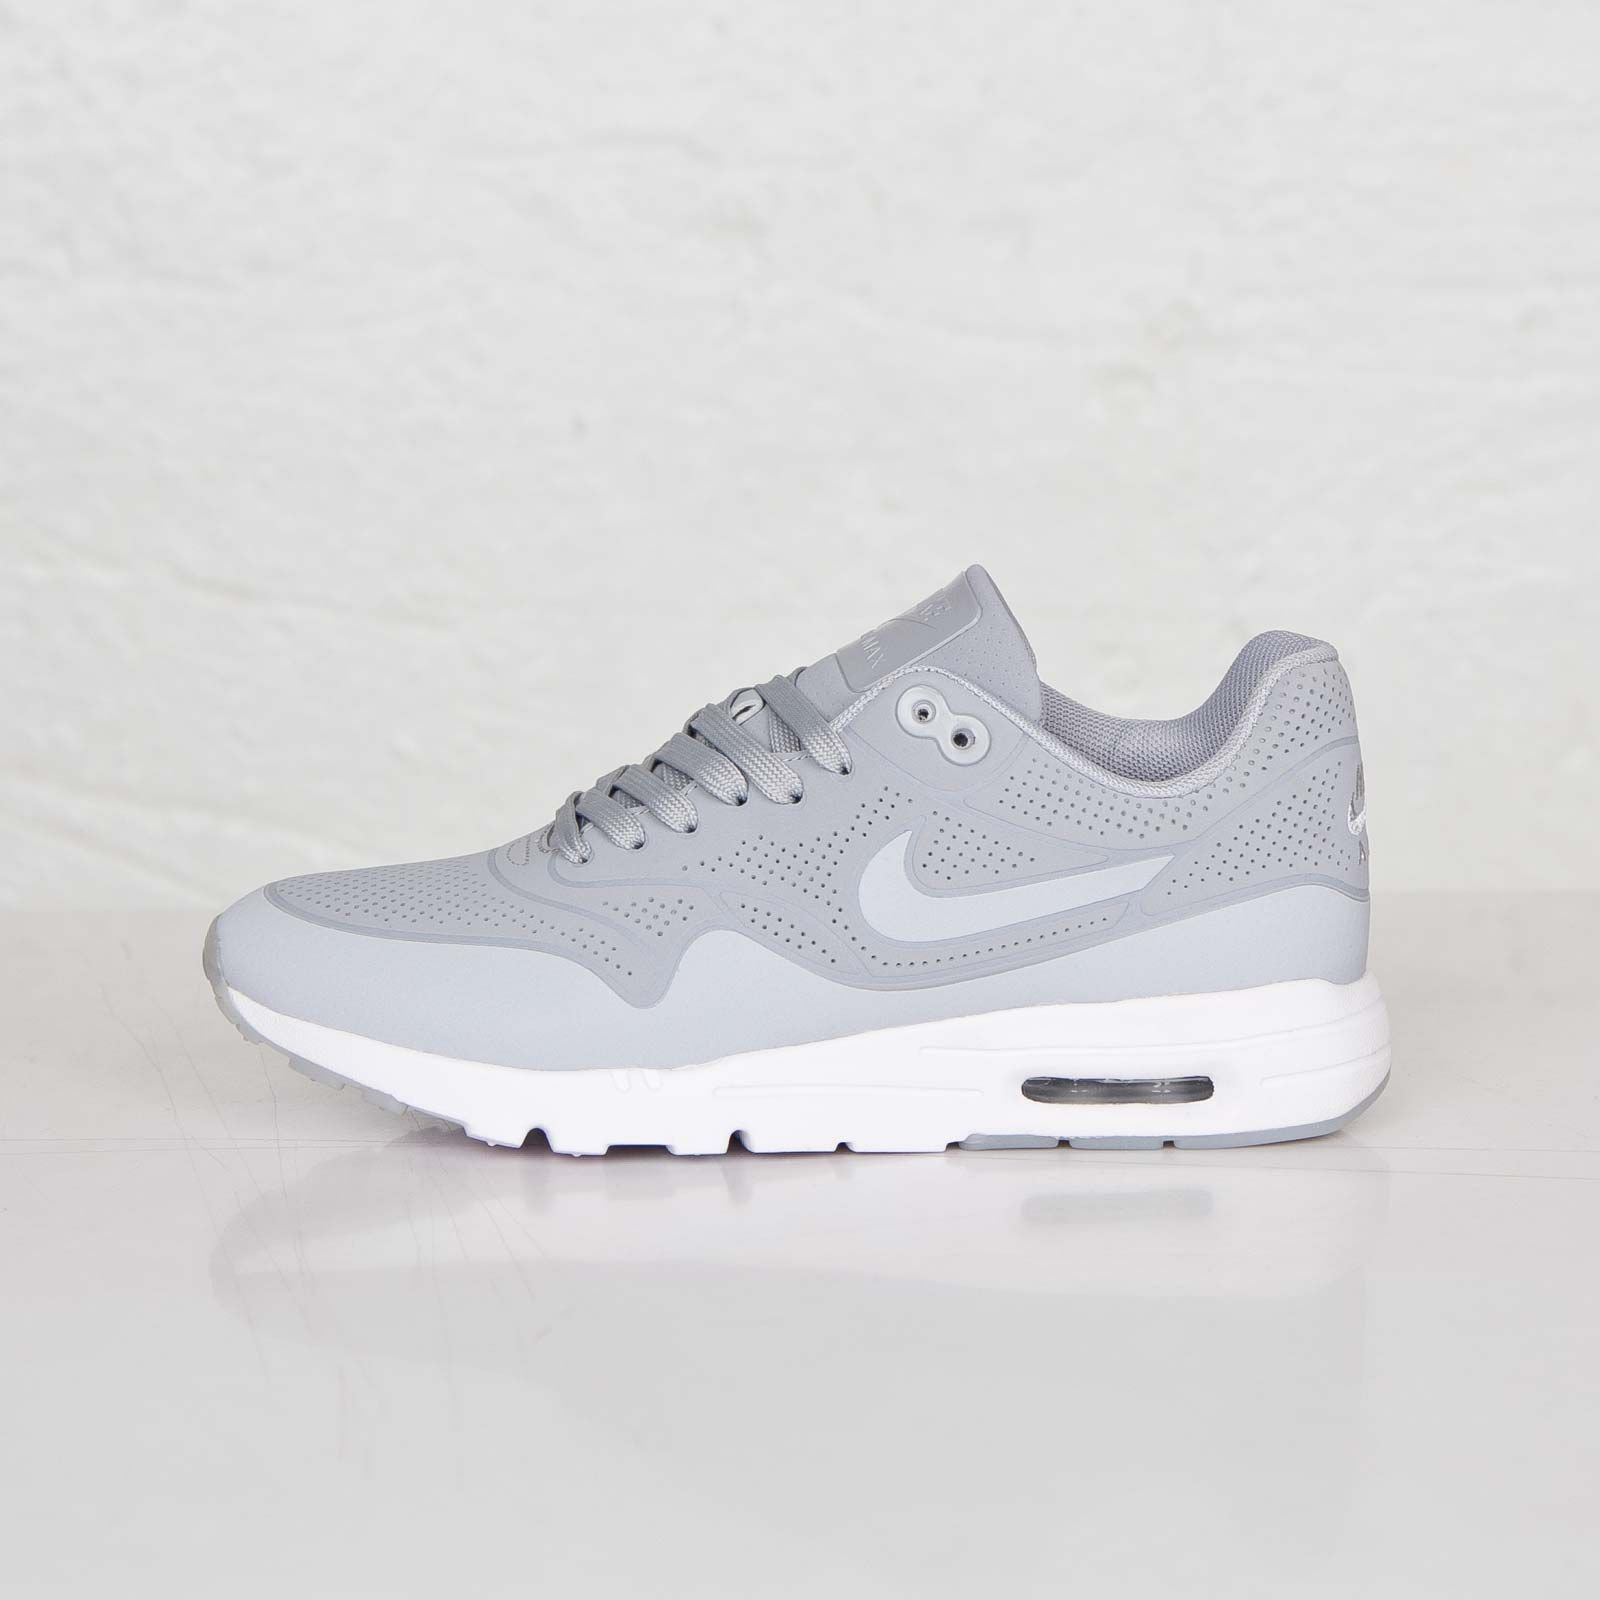 Nike Wmns Air Max 1 Ultra Moire | Sneakers shopping list